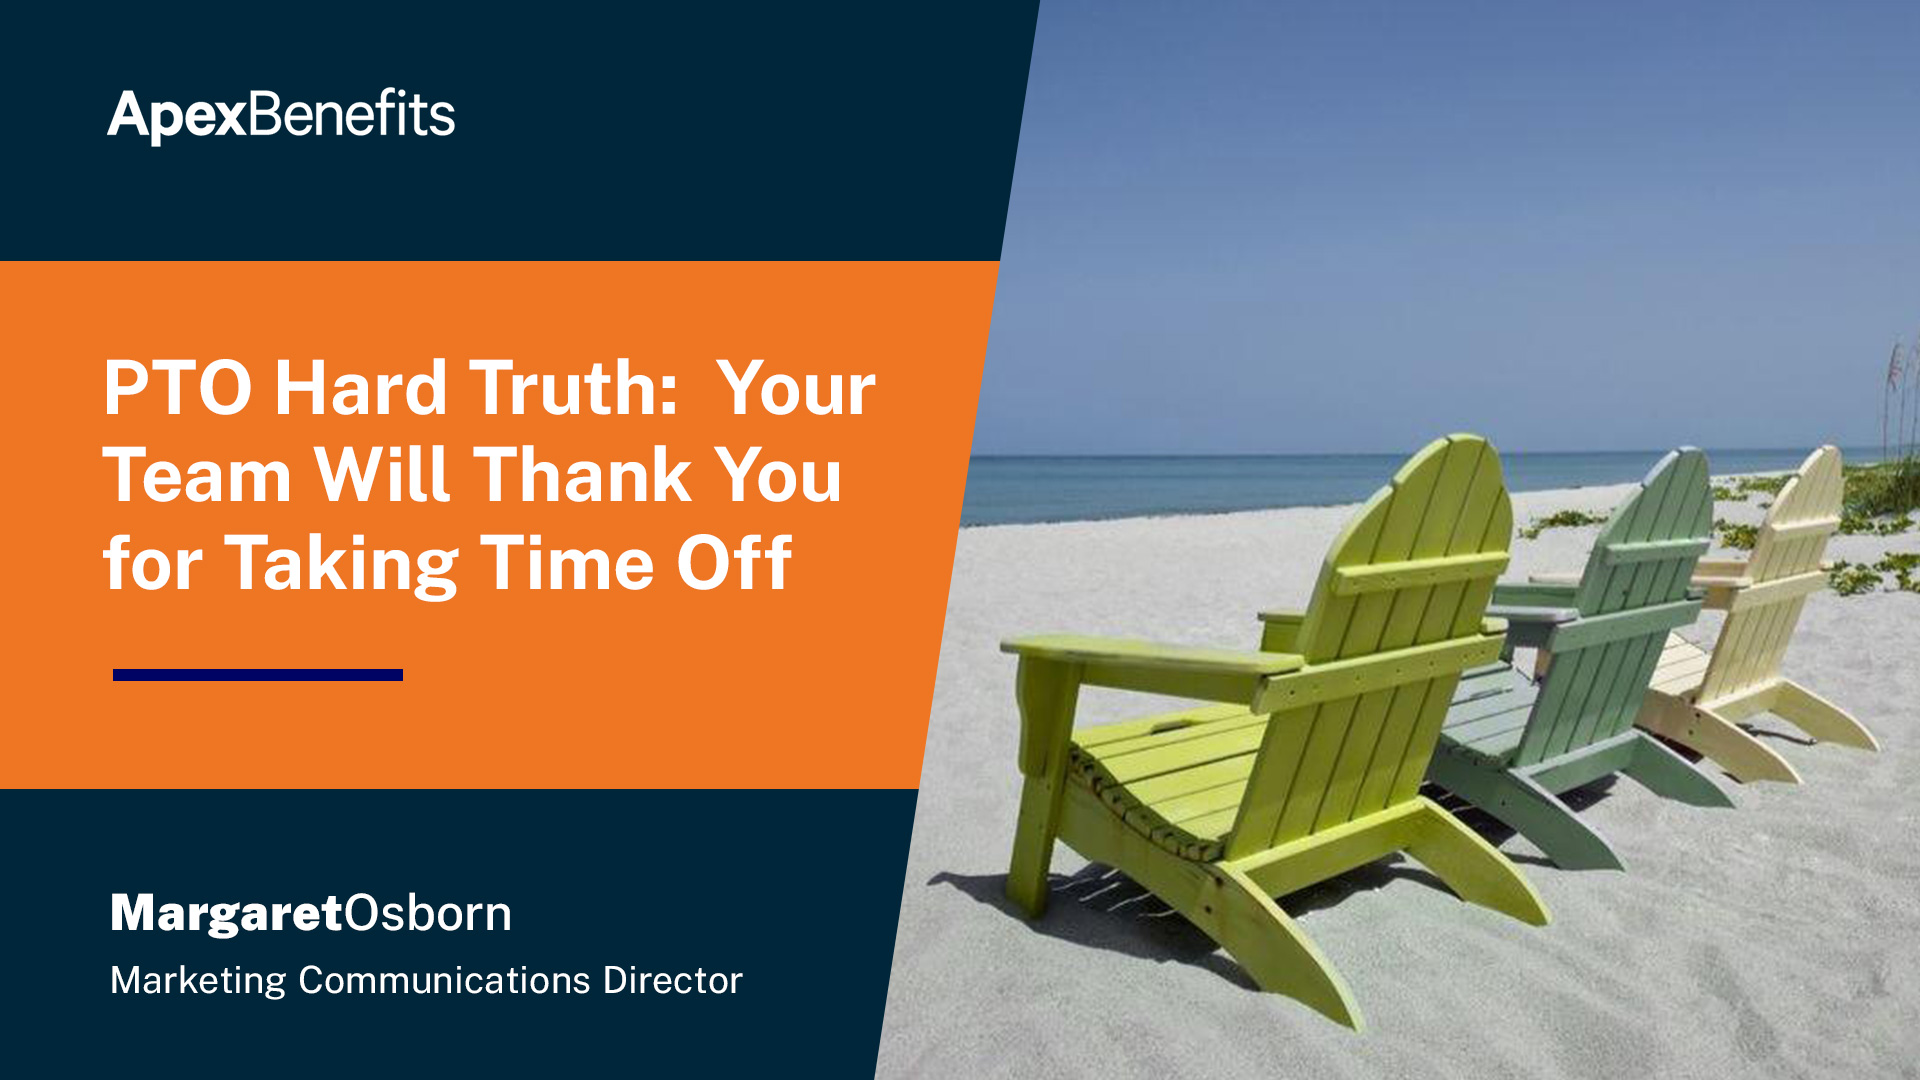 PTO Hard Truth: Your Team Will Thank You for Taking Time Off